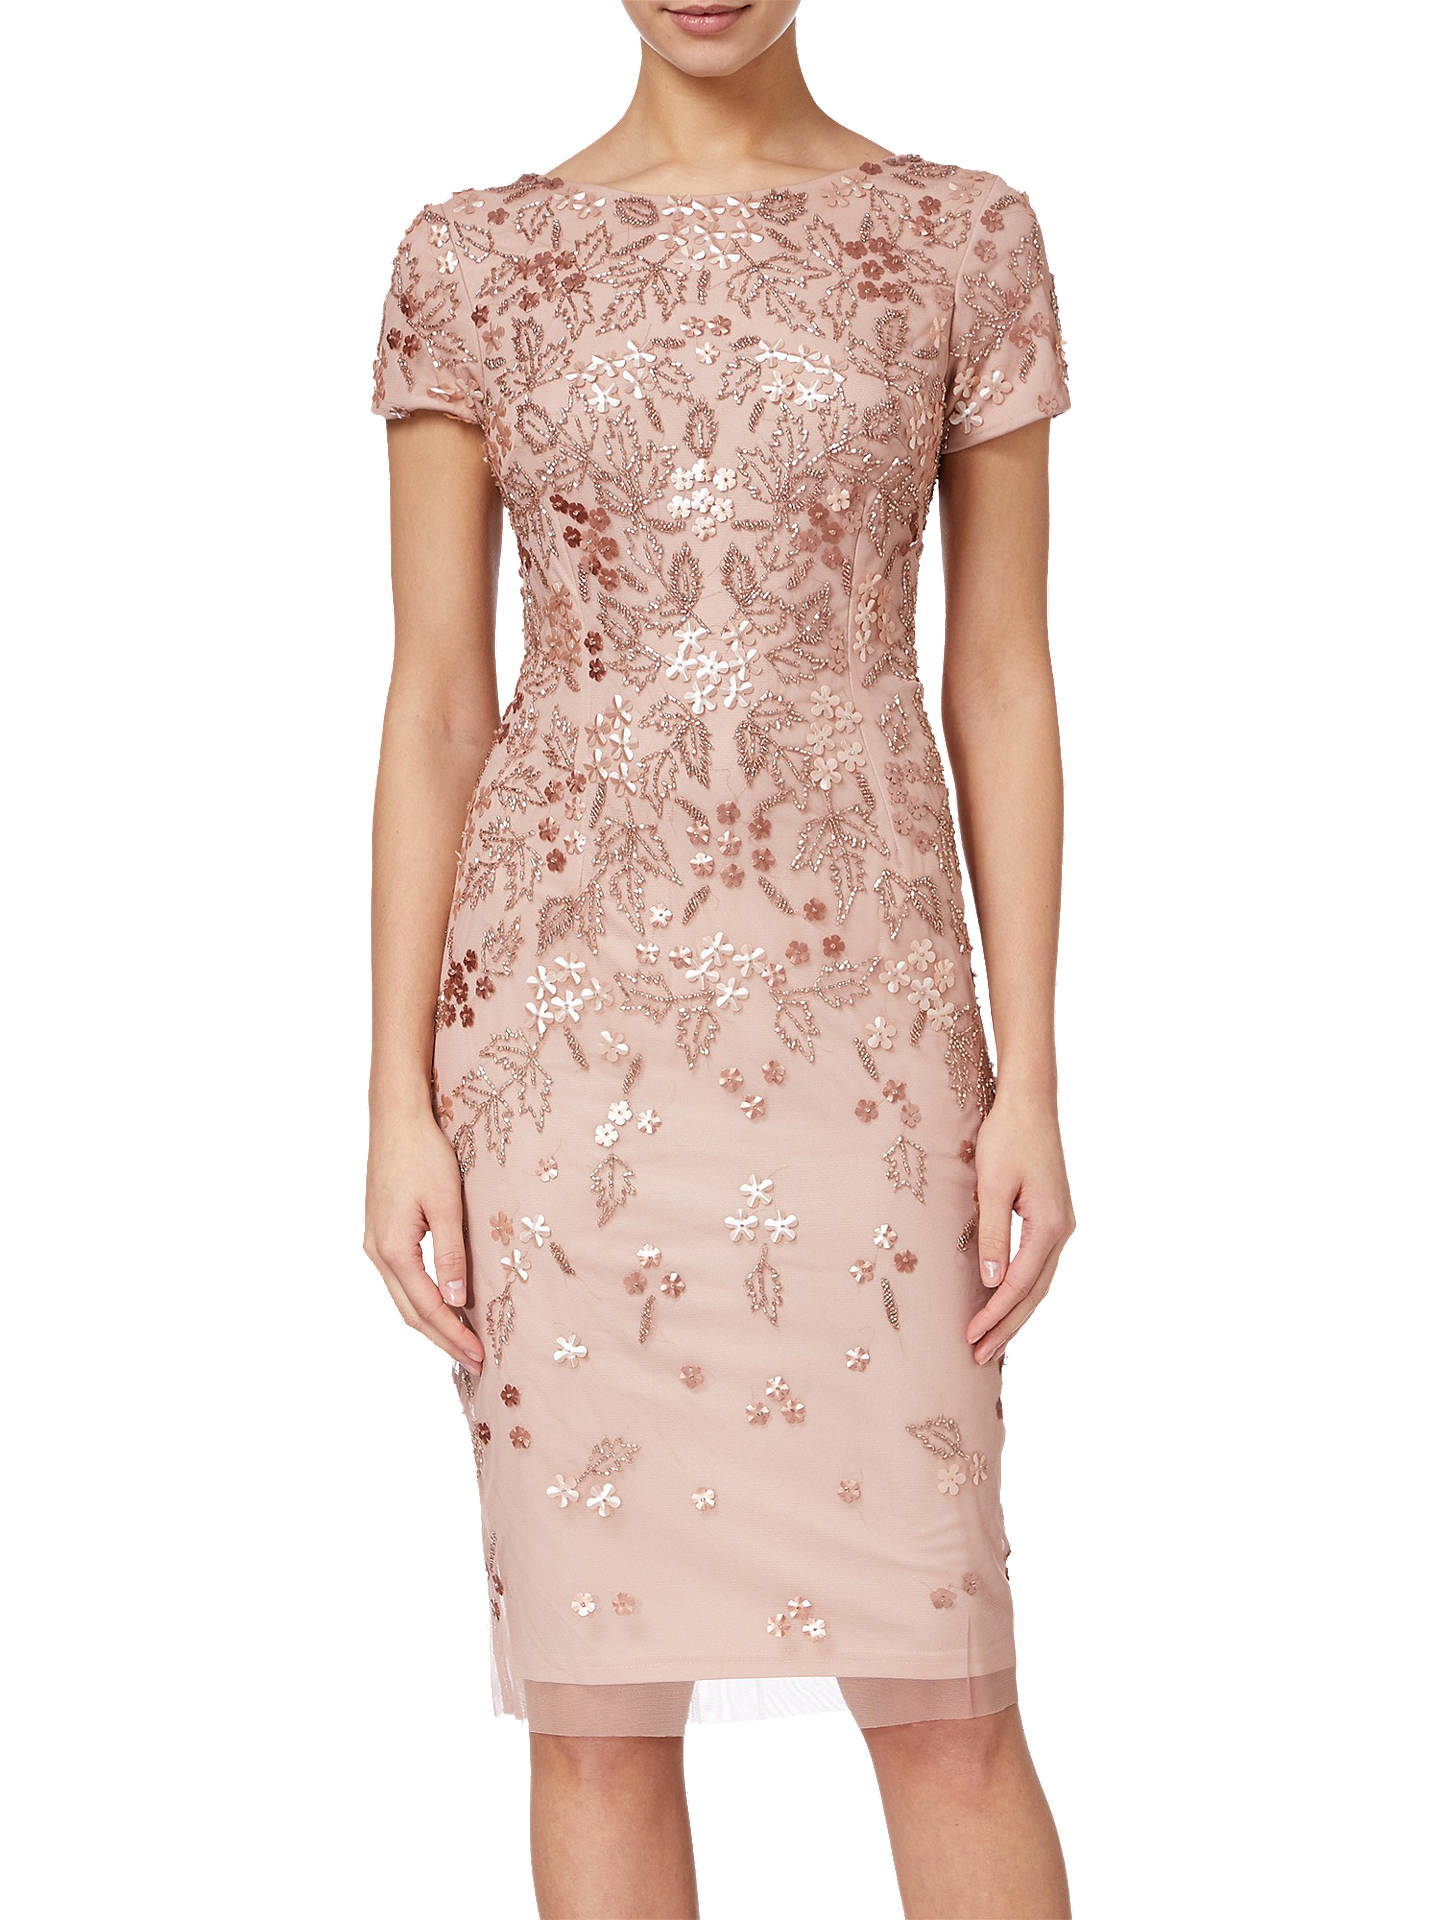 43e71a56 Buy Adrianna Papell Floral Beaded Short Dress, Rose Gold, 8 Online at  johnlewis.